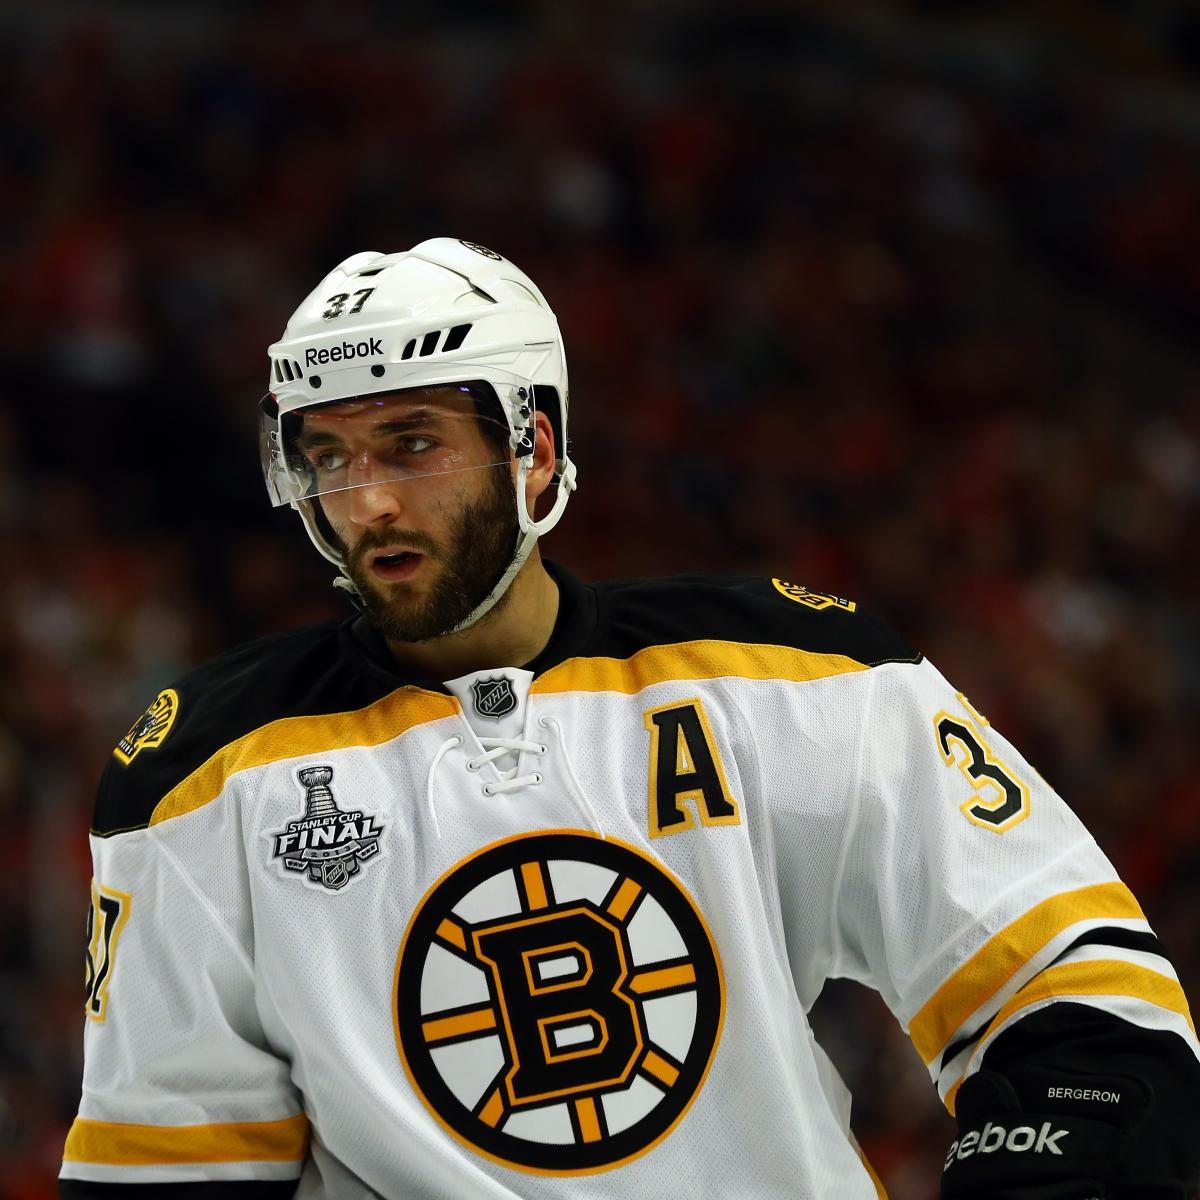 Ranking The Boston Bruins Stars' 2013 Playoff Performances